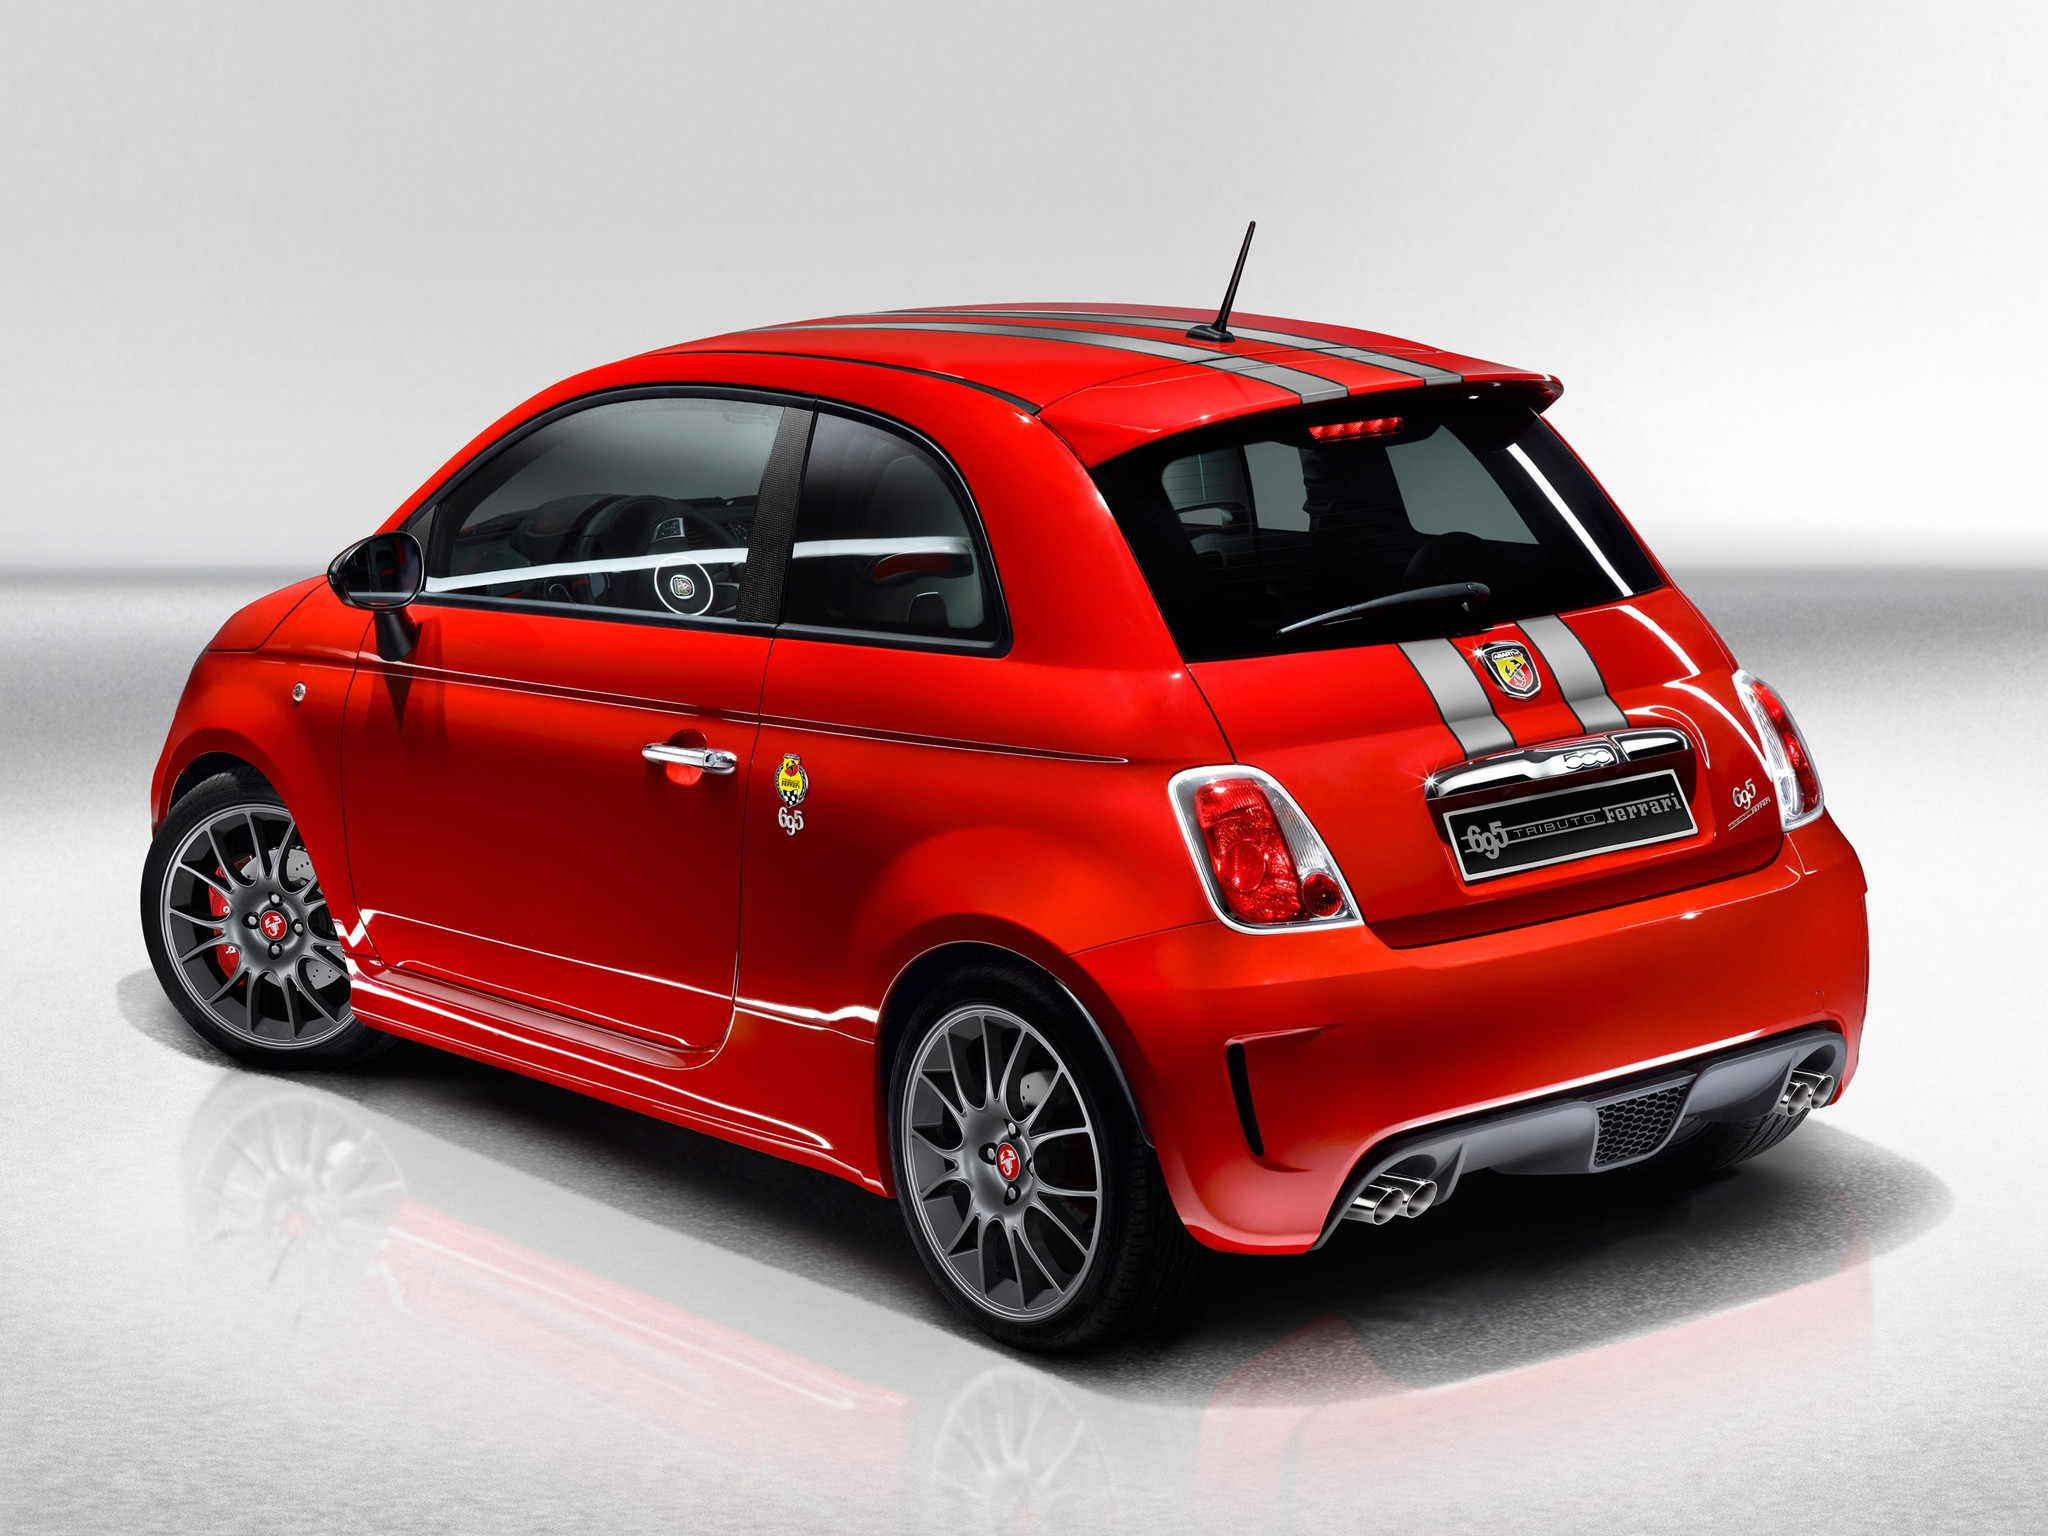 fiat 500 abarth 695 tributo ferrari 2009 2010 2011 2012 2013 2014 2015 2016 2017. Black Bedroom Furniture Sets. Home Design Ideas